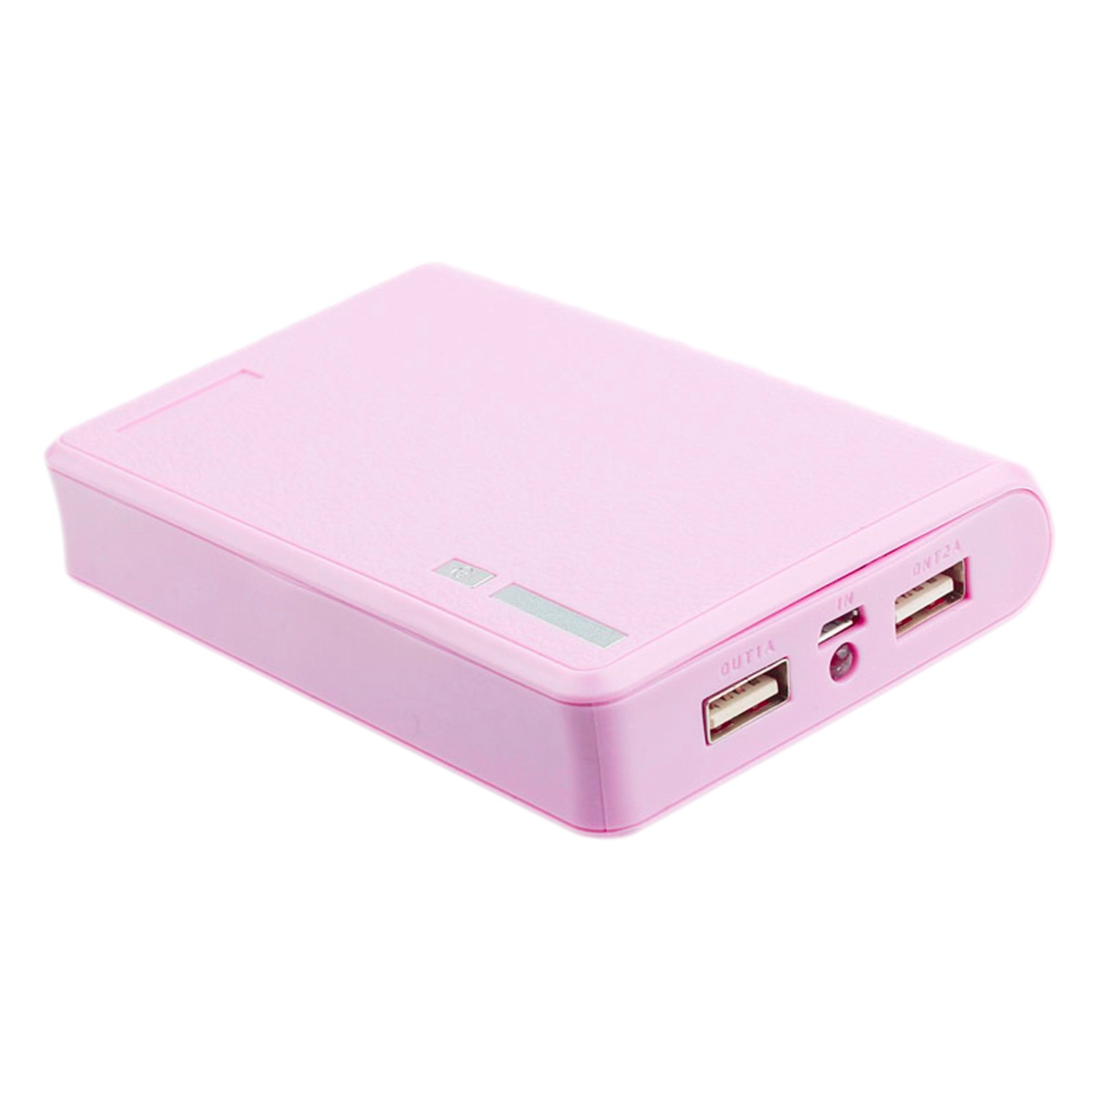 Portable USB Charger 5V 2A 18650 Power Bank Battery Box For iphone6 Smartphone